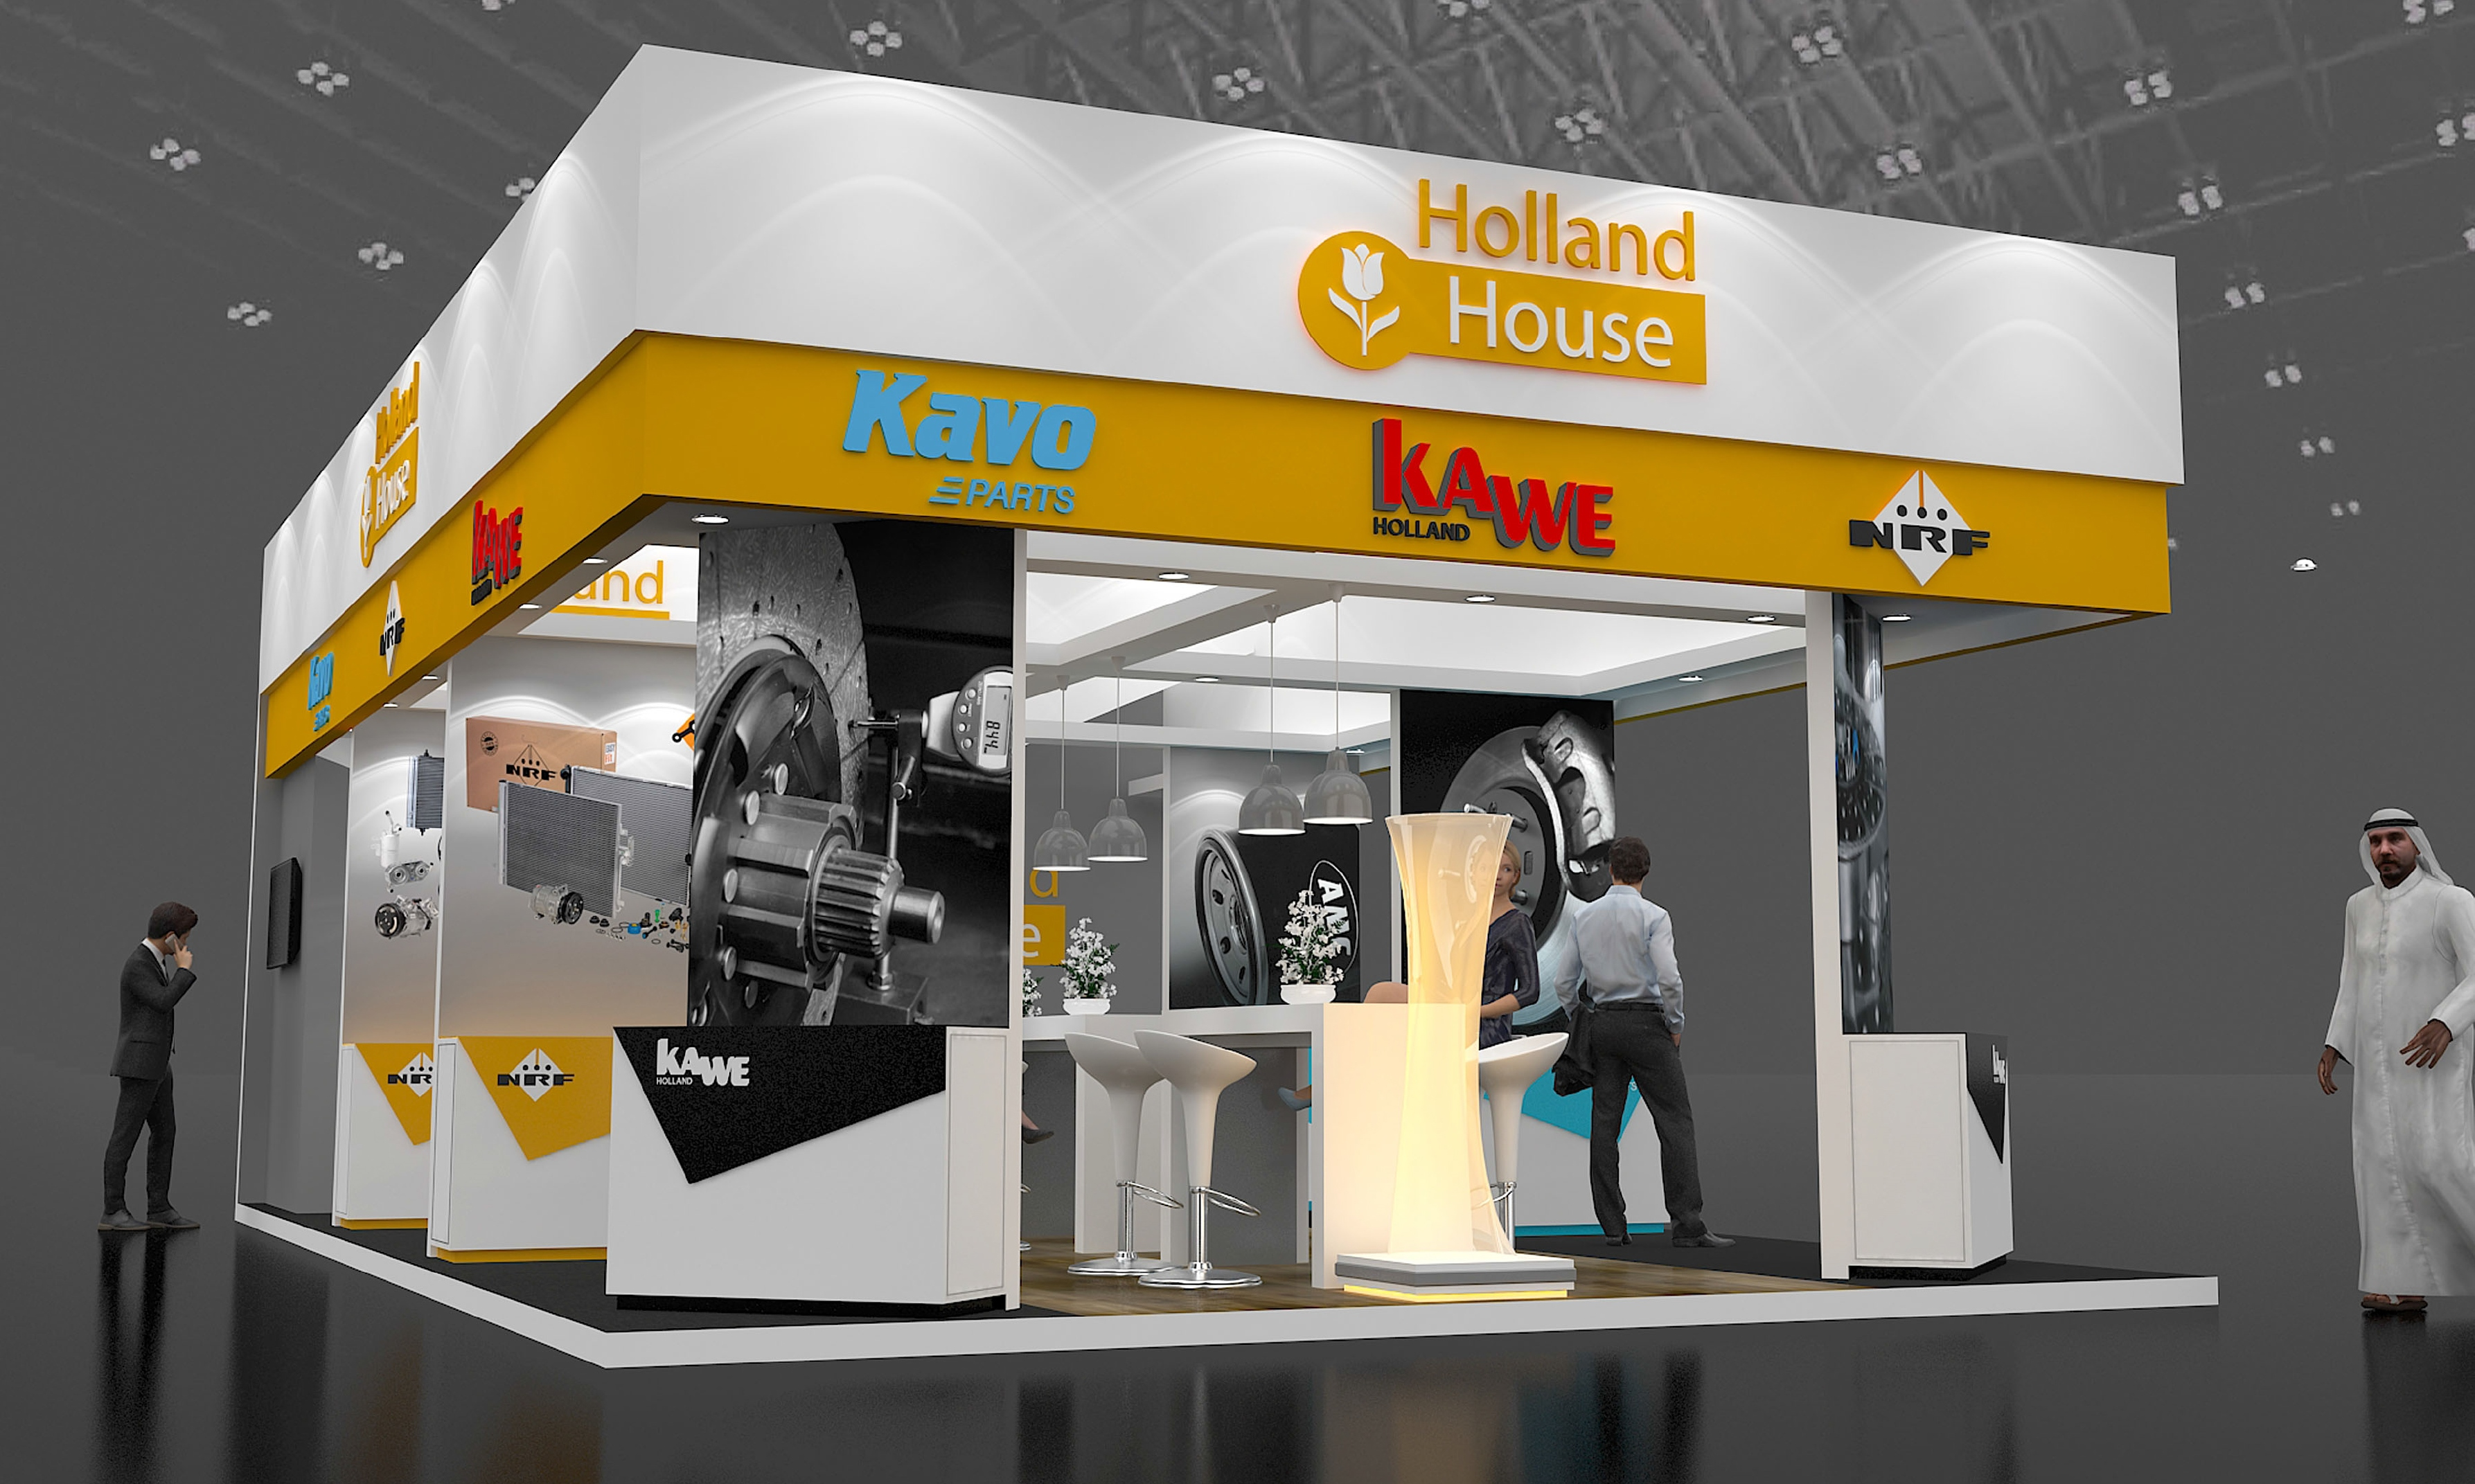 Three leading Dutch Companies to Exhibit Again at Automechanika 2018 with Holland House